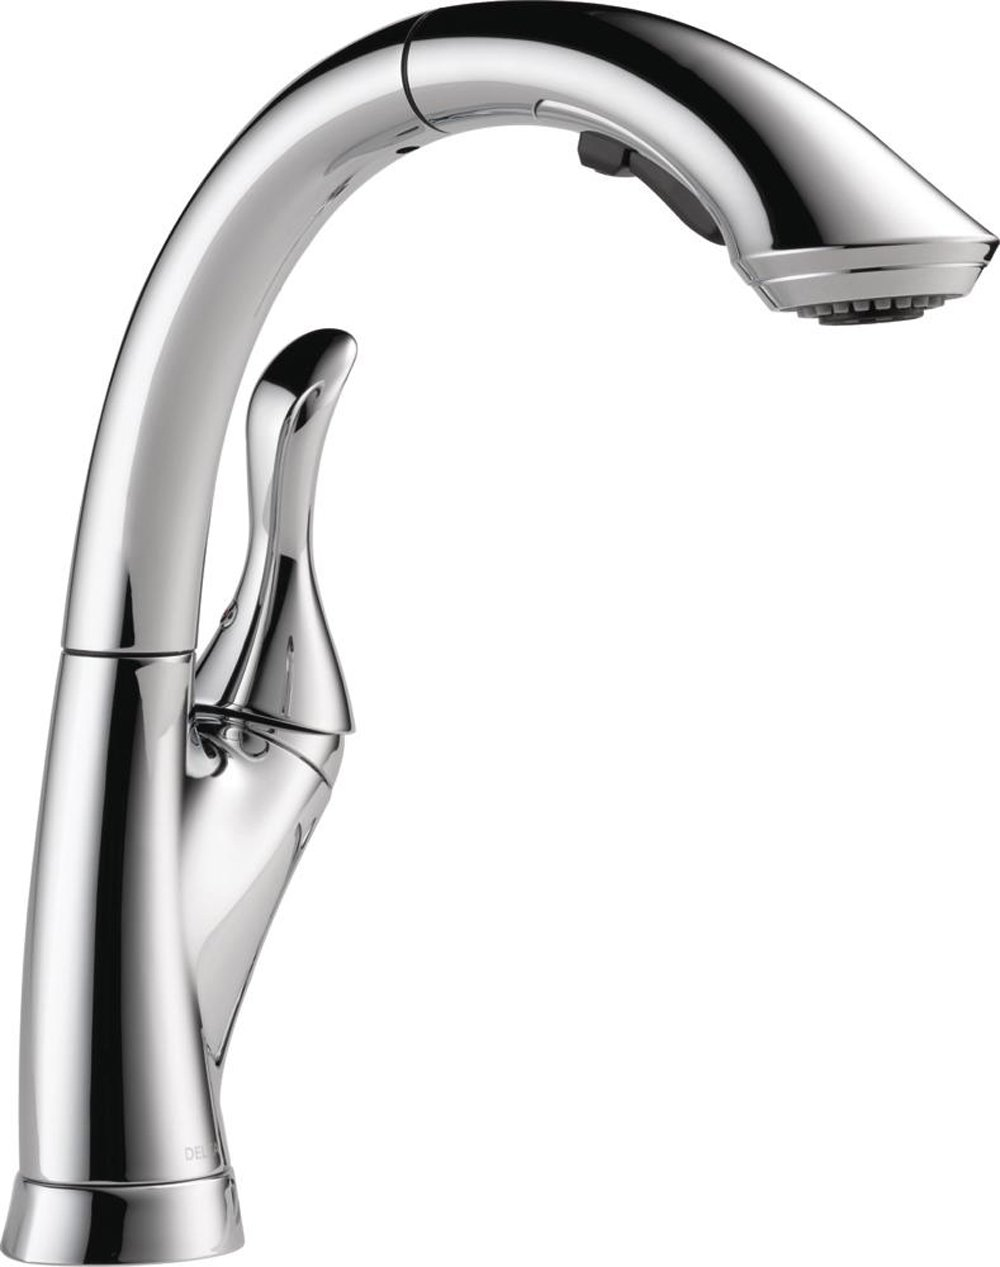 Delta Faucet Linden Single-Handle Kitchen Sink Faucet with Pull Out Sprayer, Chrome 4153-DST